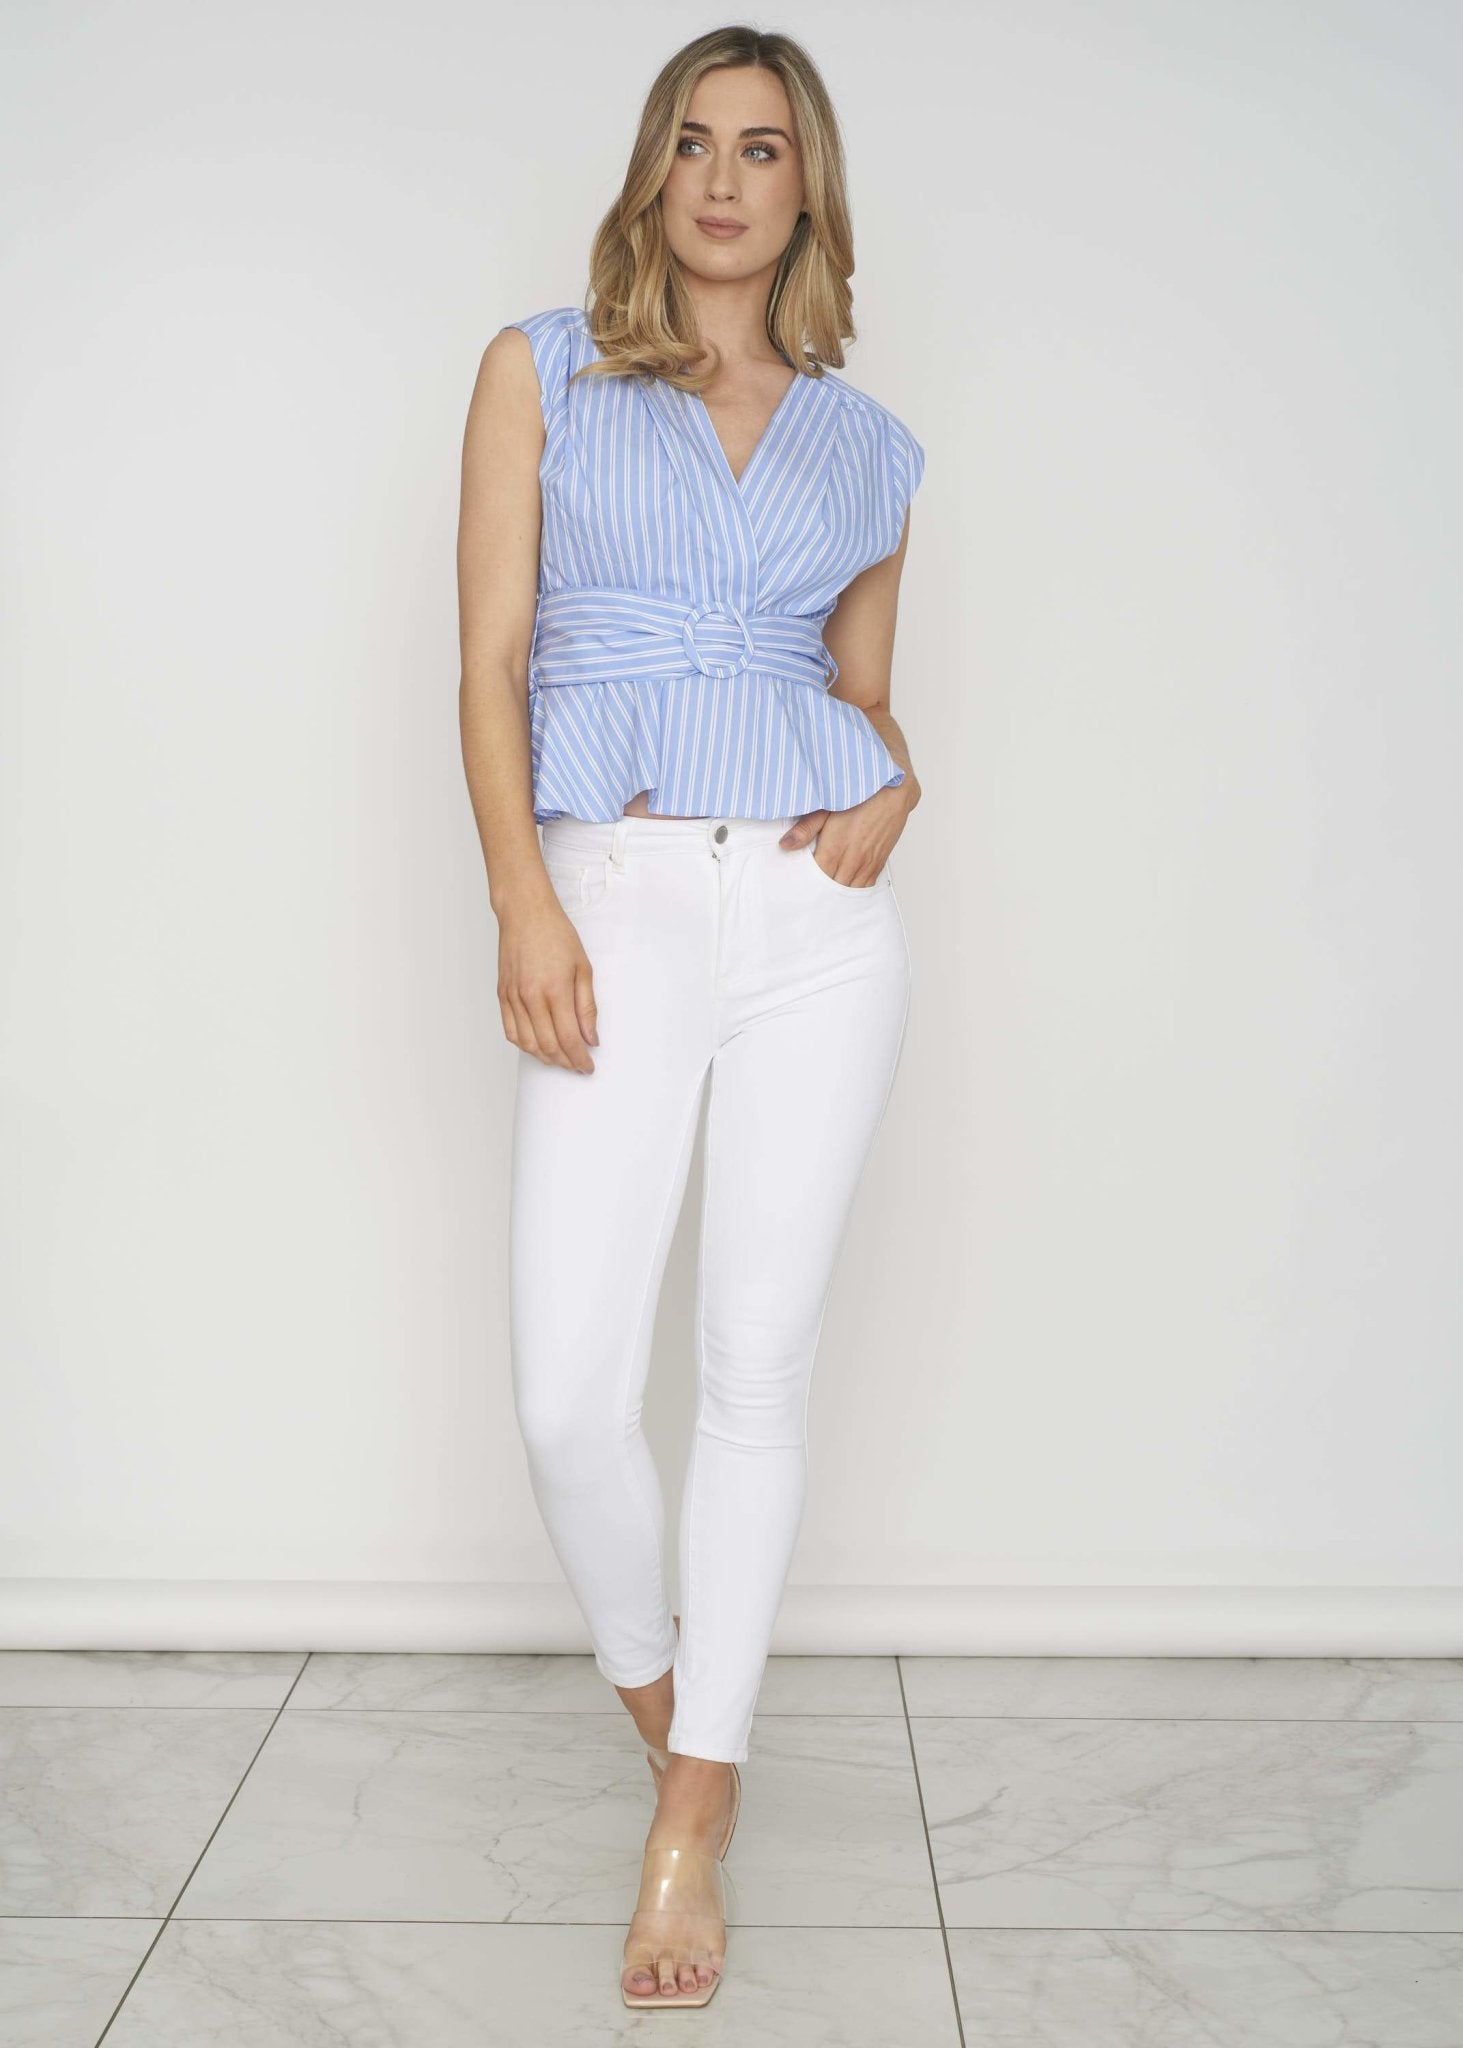 Quinn Belted Peplum Top In Blue - The Walk in Wardrobe